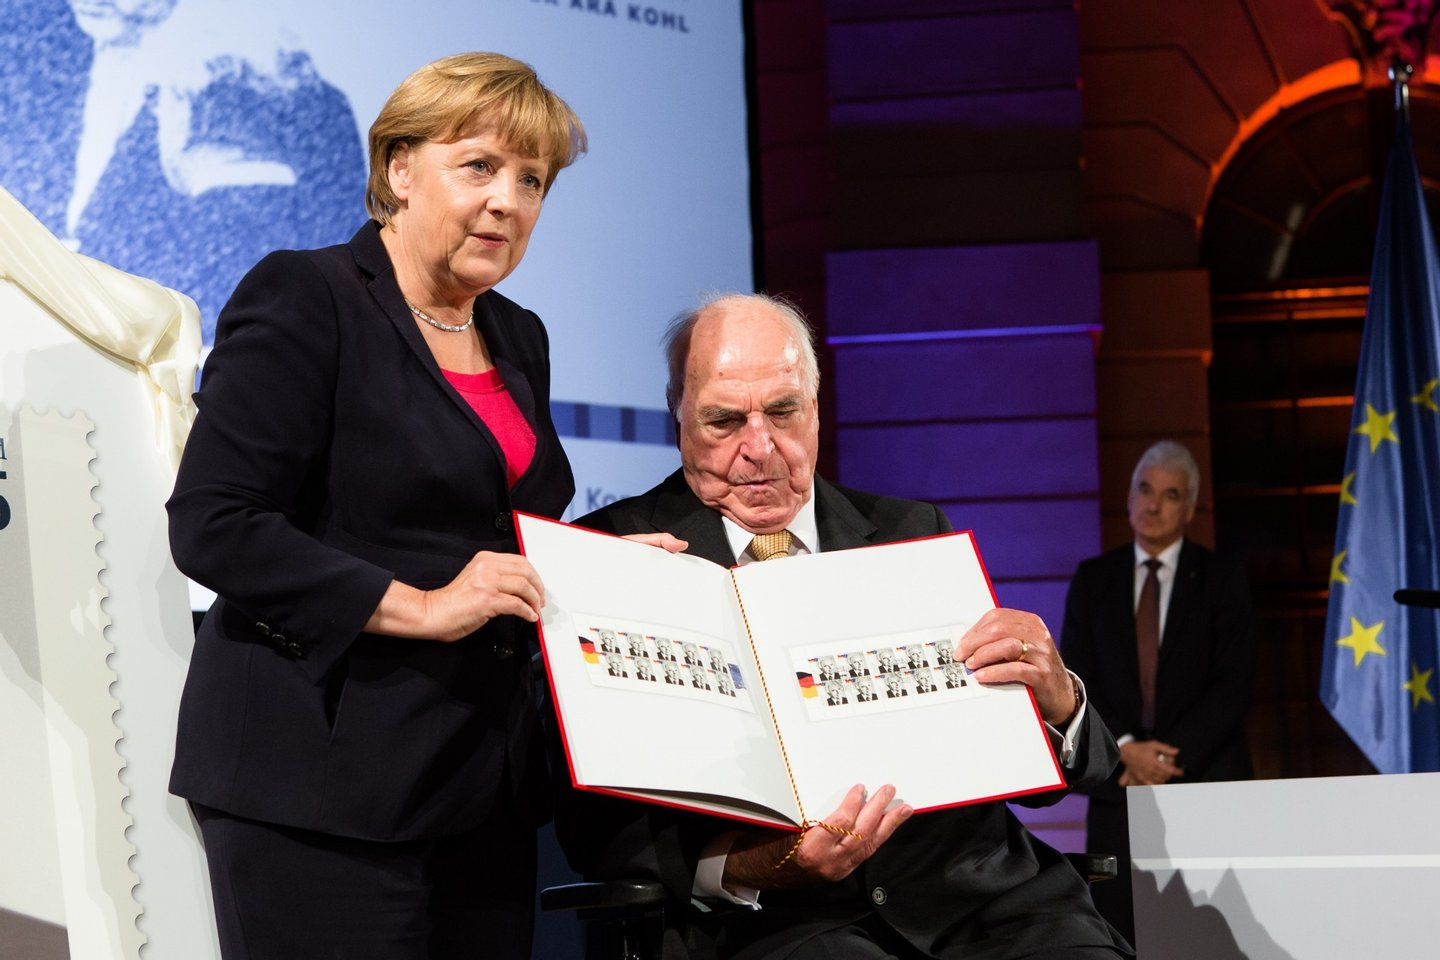 BERLIN, GERMANY - SEPTEMBER 27:  German Chancellor Angela Merkel (L) presents a commemorative postal stamp showing former German Chancellor Helmut Kohl as the former Chancellor (R) looks on at a gala evening in Kohl's honour at the Deutsches Museum on September 27, 2012 in Berlin, Germany. Guests from politics, church and society attended the event to honour Kohl on the 30th anniversary of Kohl becoming chancellor. During his chancellorship Kohl facillitated the end of the Cold War, the fall of the Berlin Wall and German reunification.  (Photo by Christian Marquardt - Pool / Getty Images)